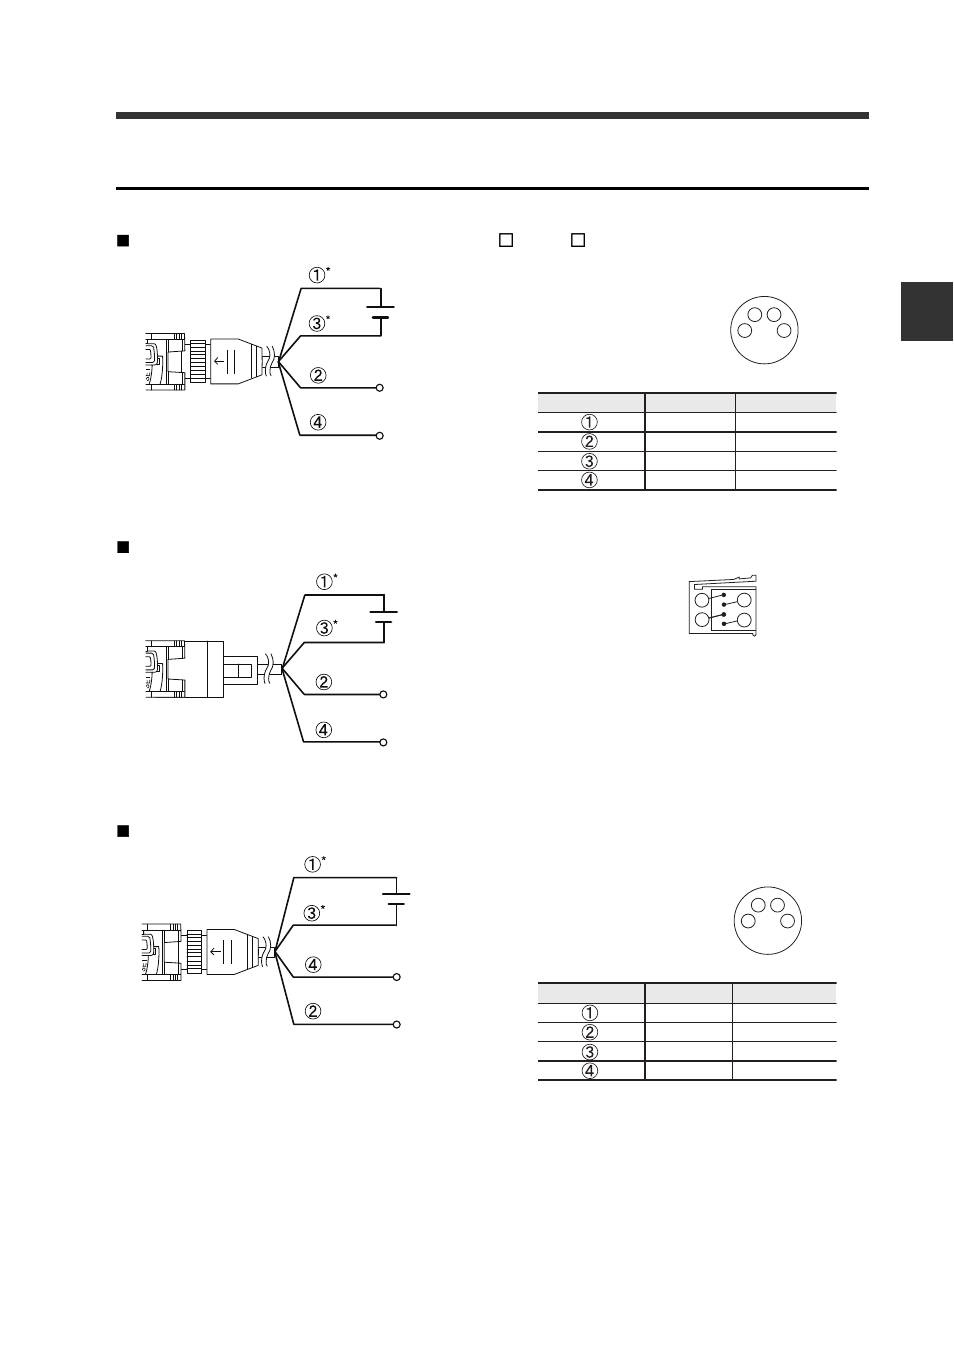 medium resolution of wiring diagrams for m8 e con connector types keyence fs n10 series nissan speed sensor wire